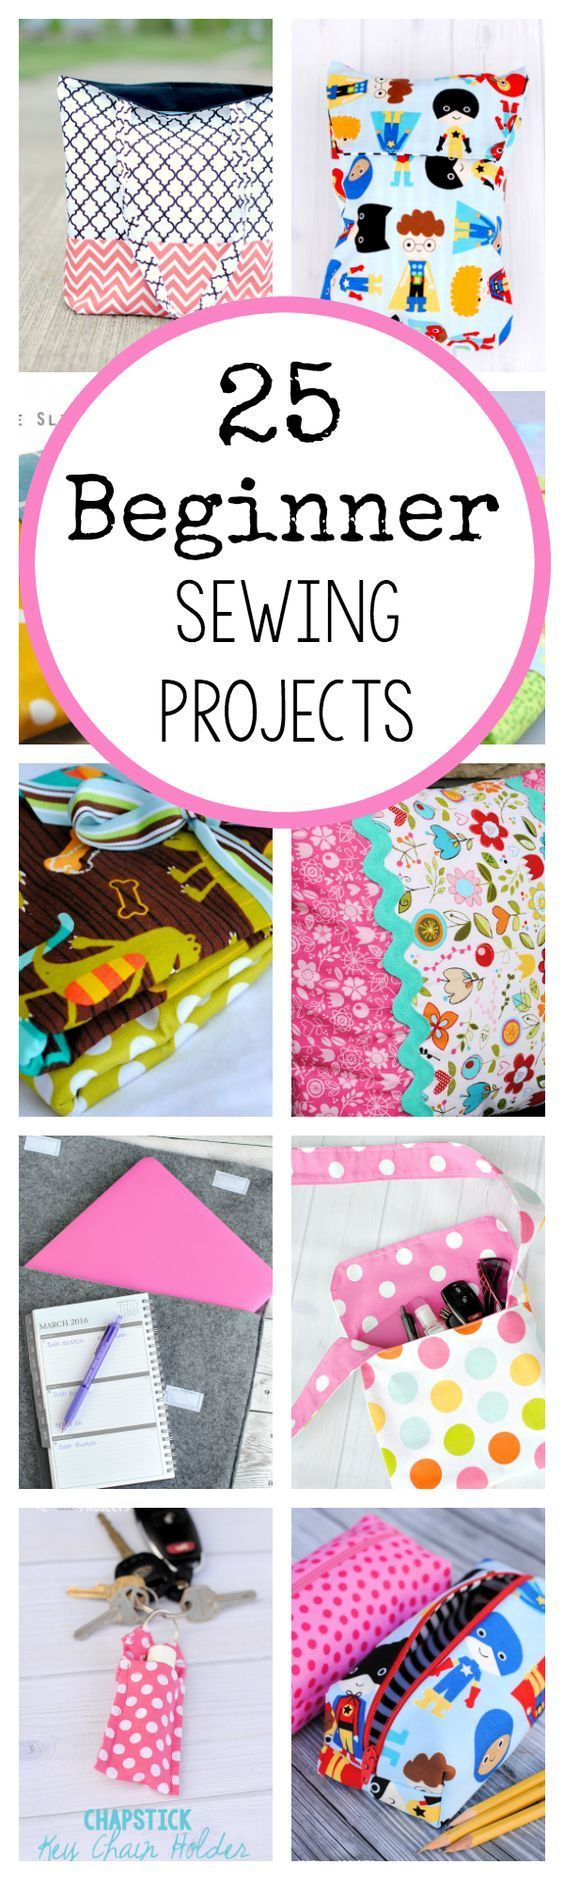 Sewing Projects for Beginners …